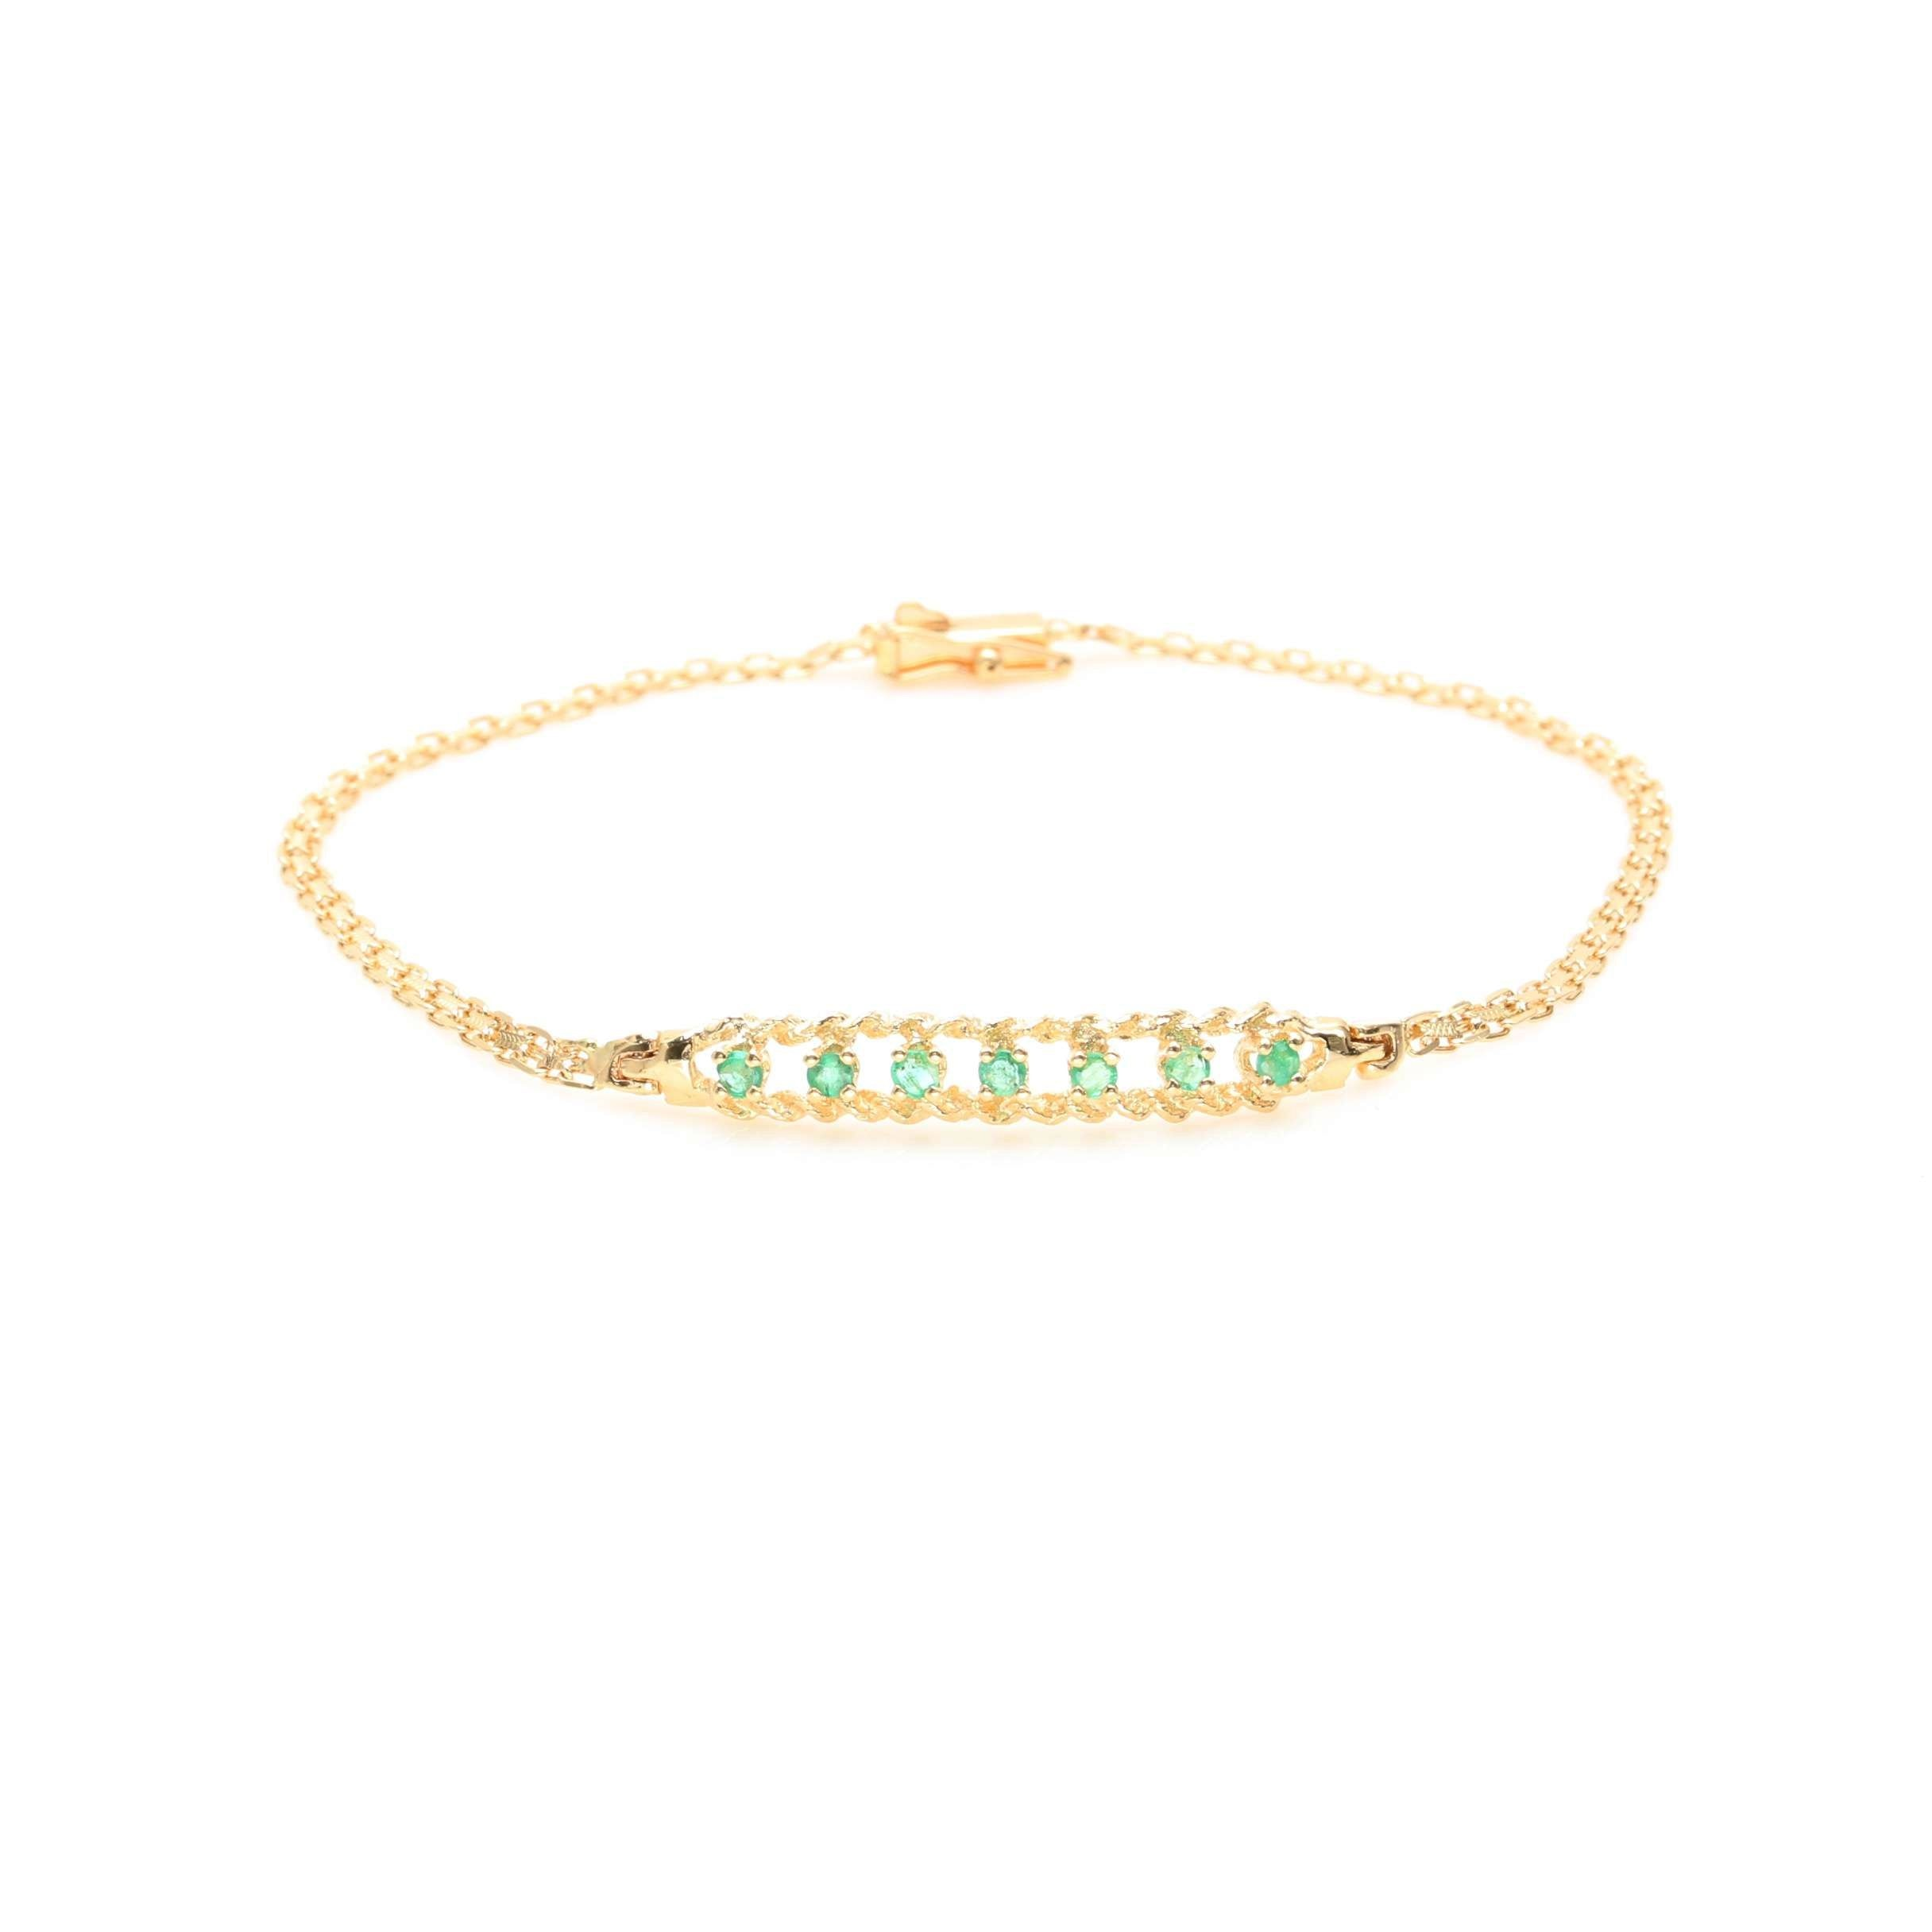 14K Yellow Gold Emerald Chain Link Bracelet